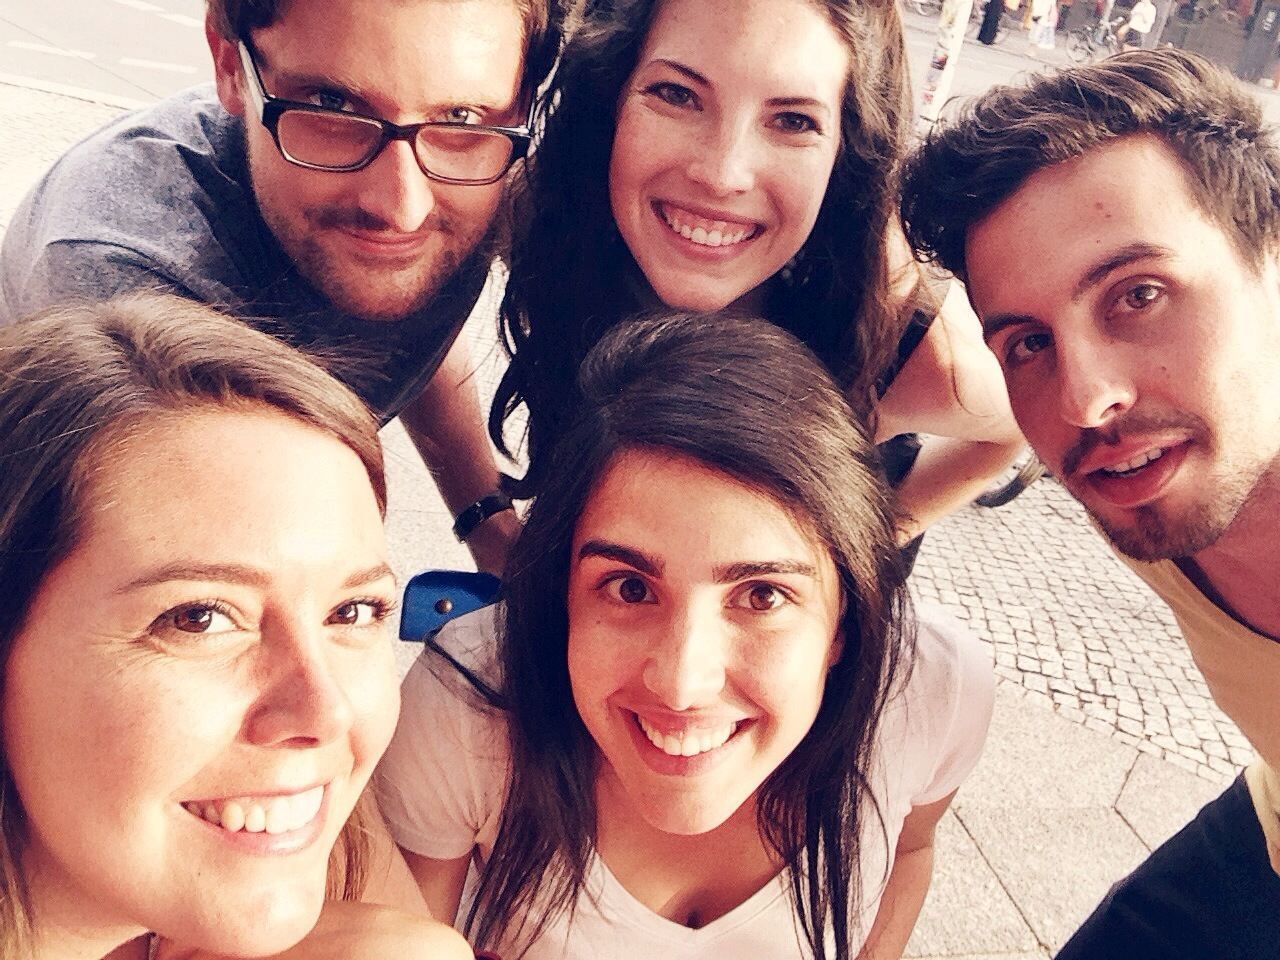 Selfie of our project team from  180 Degrees Consulting Berlin  with our founder! The perfect end to a great meeting.     Photo taken: June 10, 2014 in Berlin, Germany.